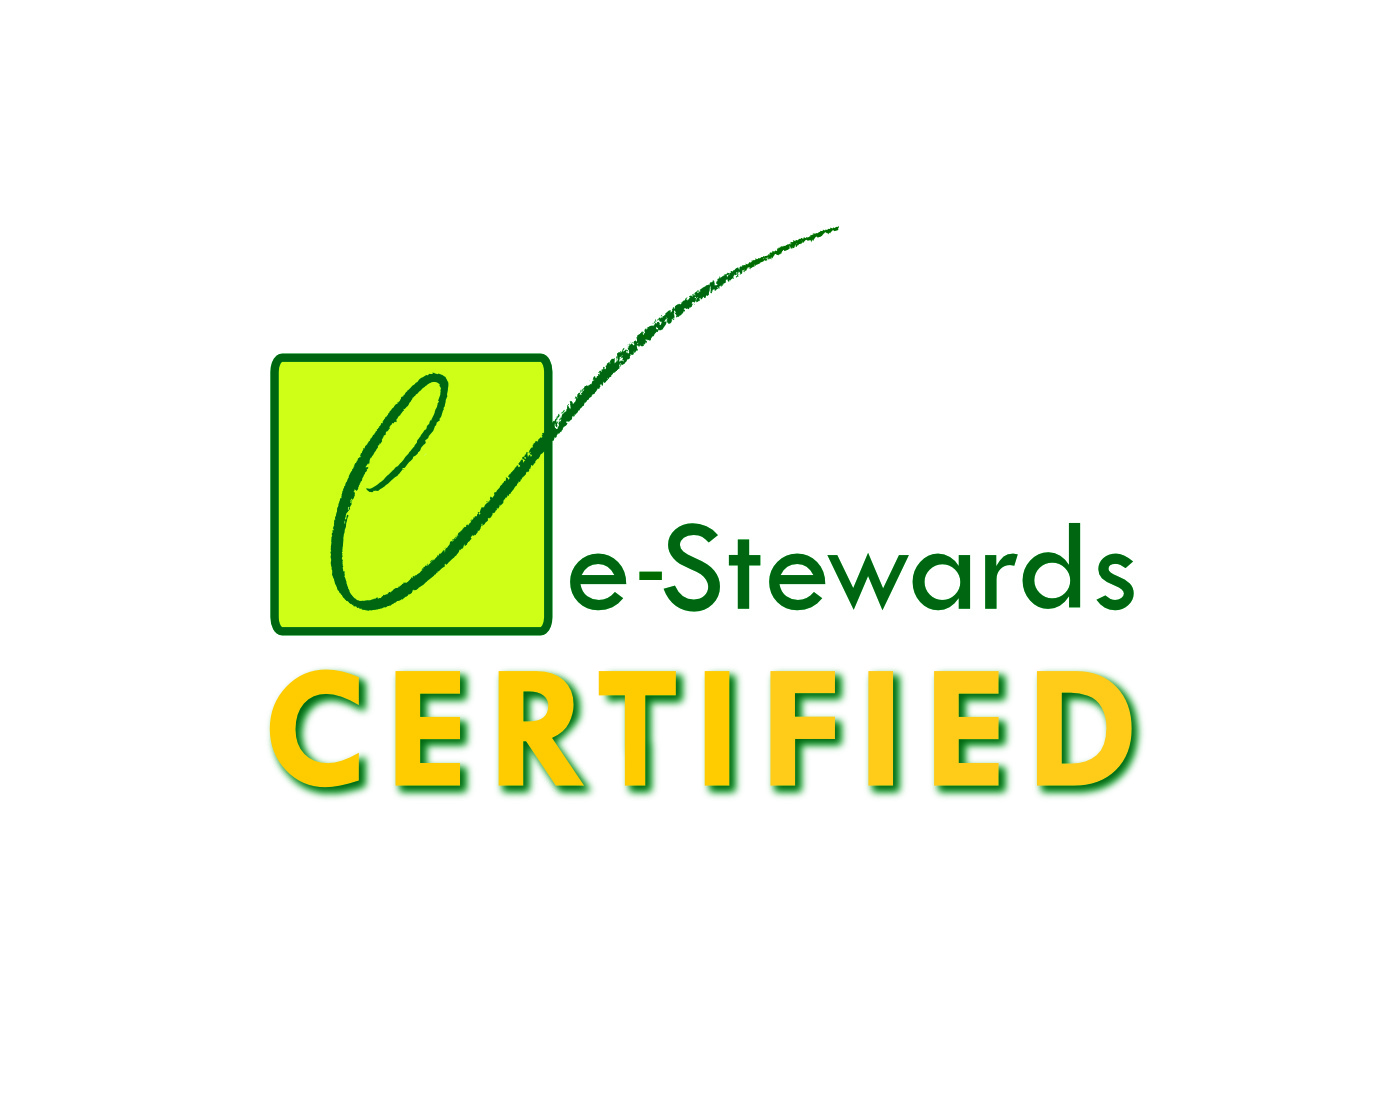 Apto Solutions Completes eStewards Certification for All Locations